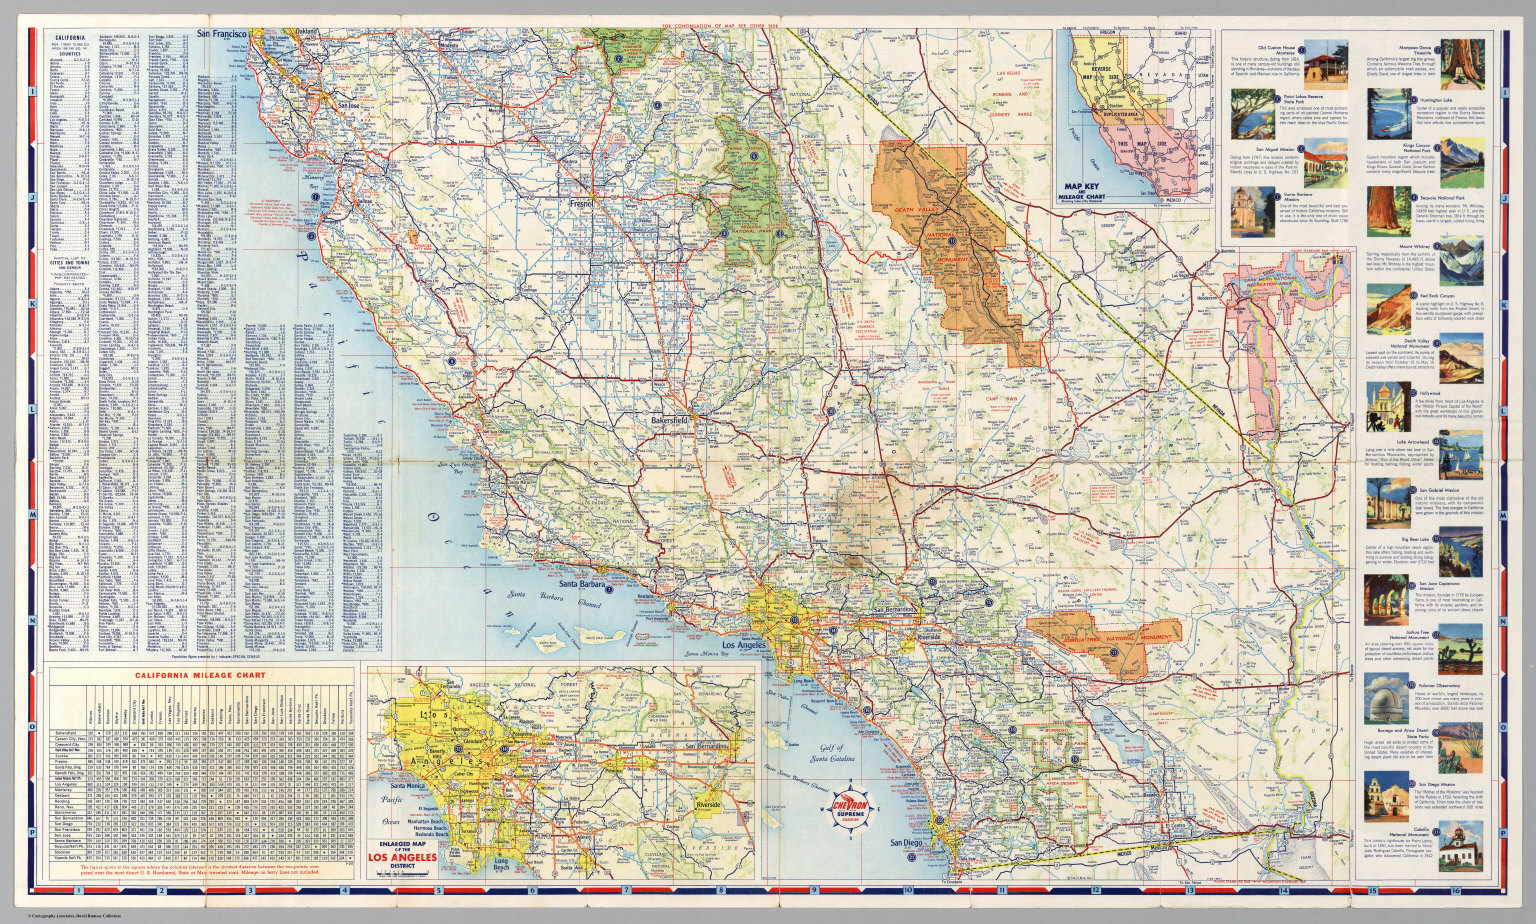 South half) Road map of California - David Rumsey Historical ... on maps and directions, maps to print and trace, maps car, maps state, maps food, maps of coastal northern california, maps city,